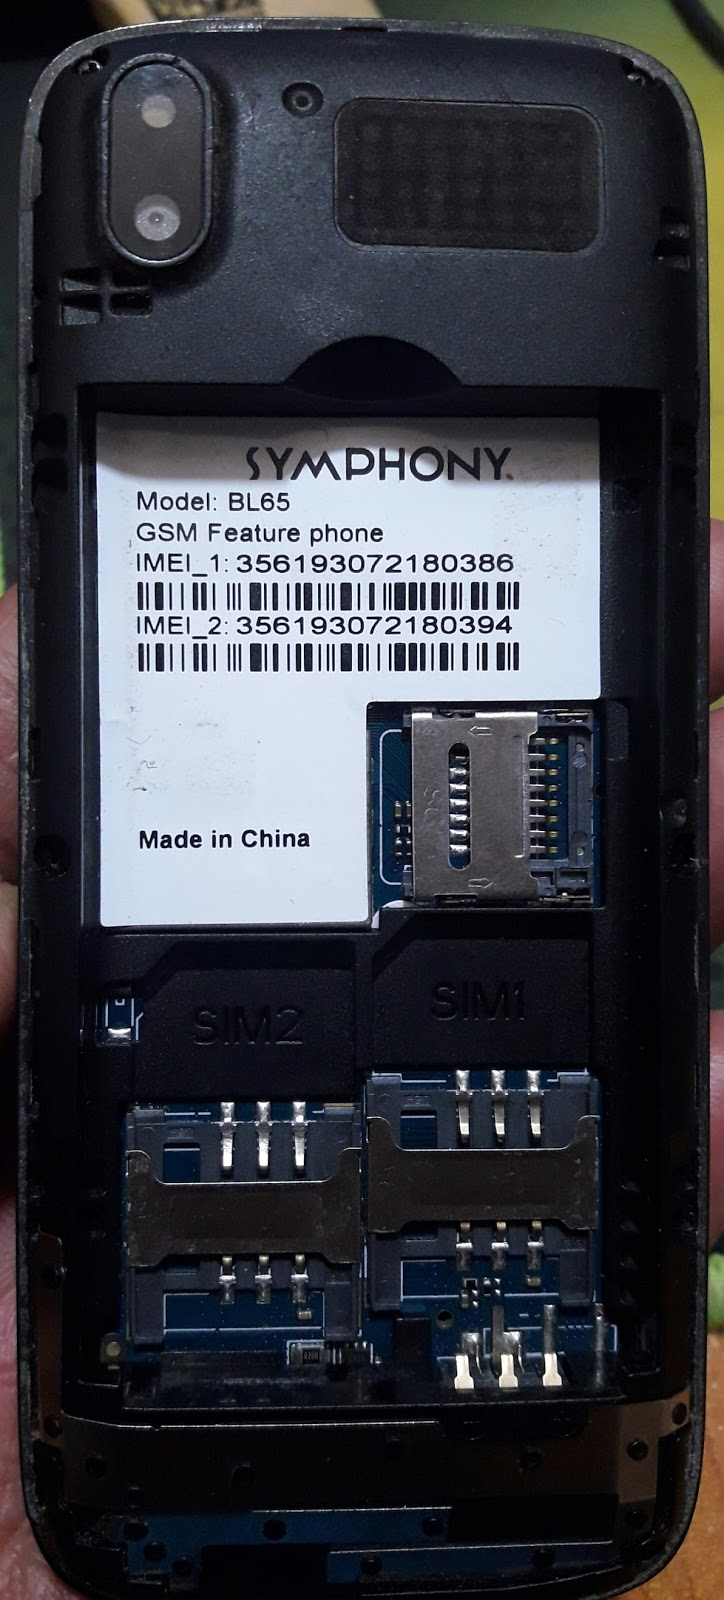 Symphony BL65 Flash File Free Download Without Password - Mobile